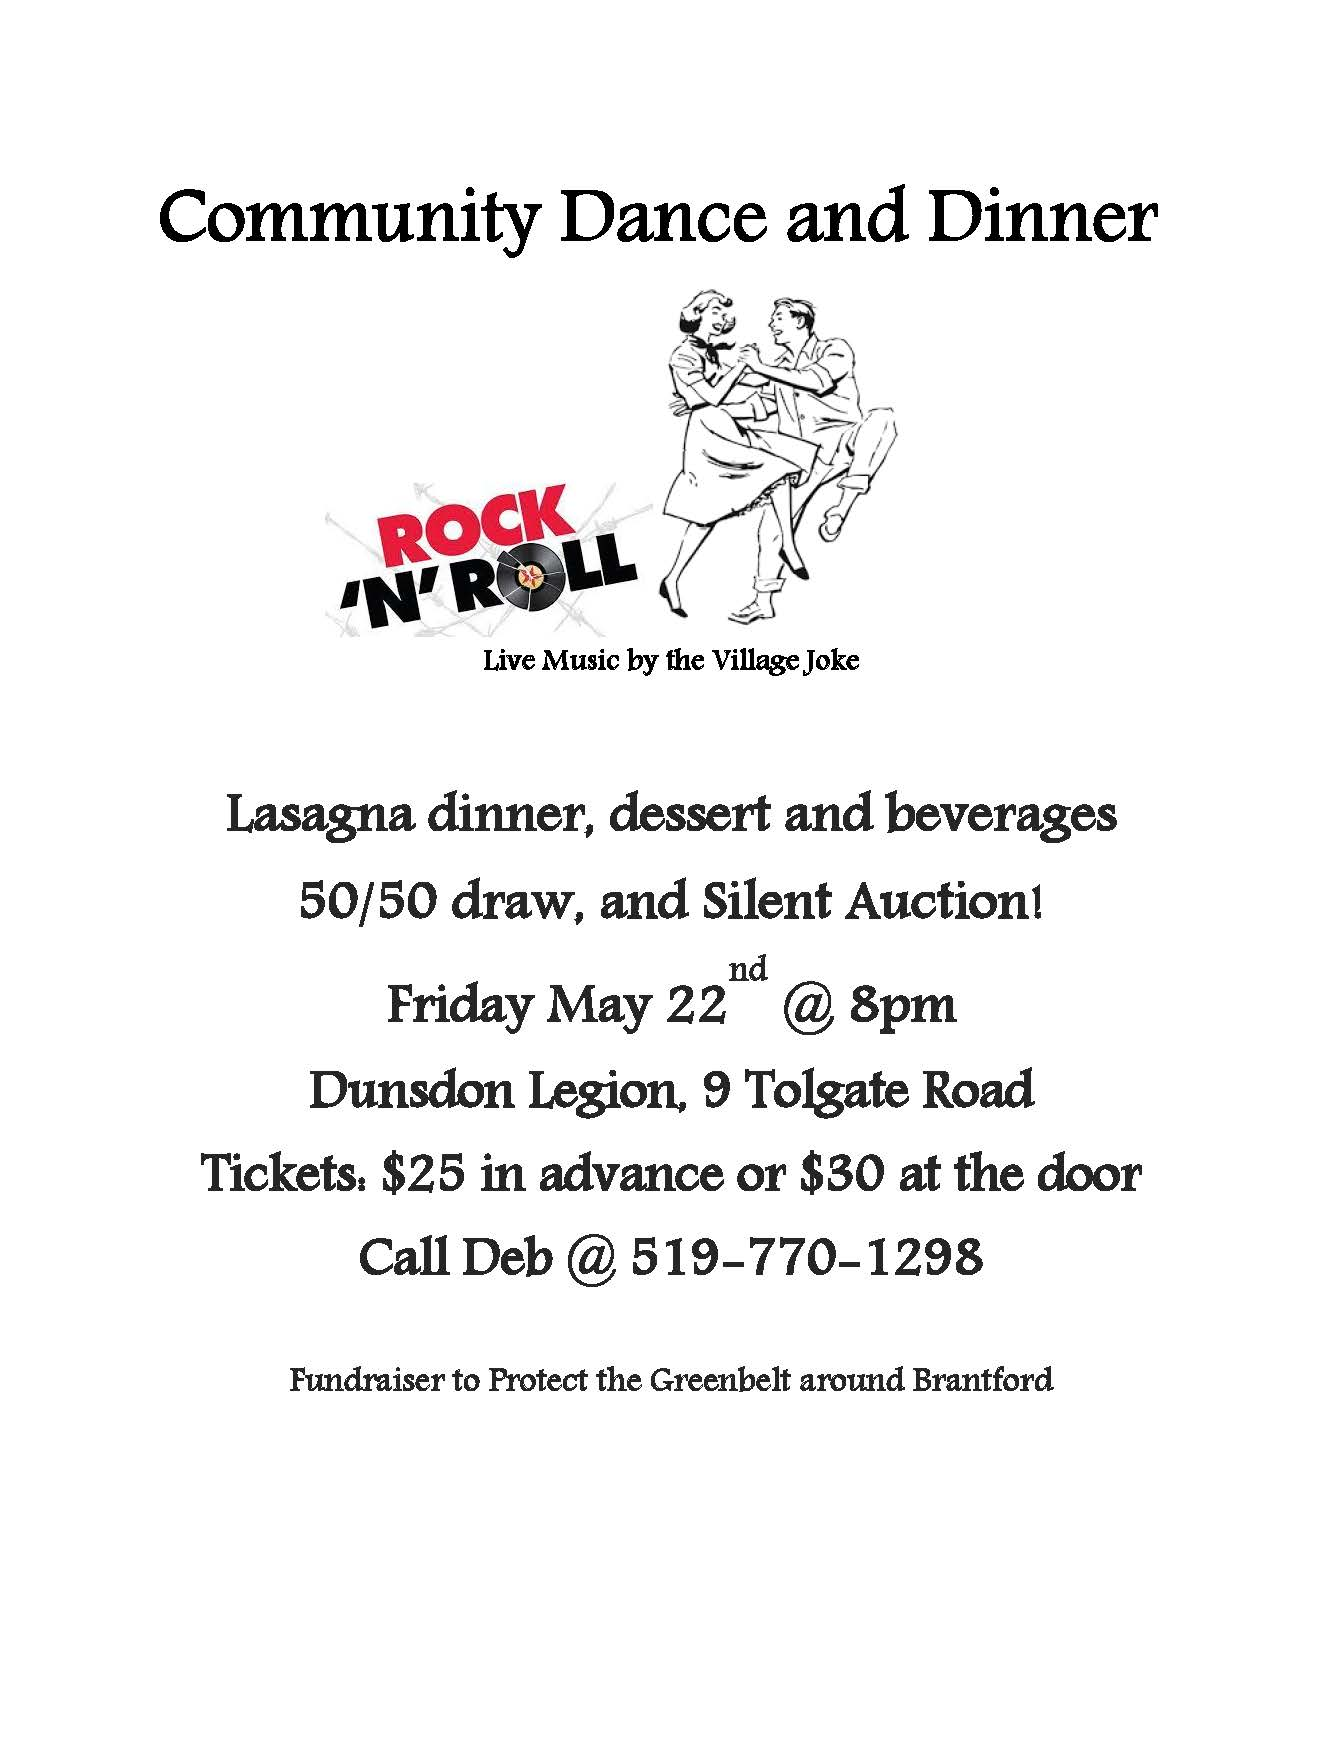 Community_Dance_and_Dinner_May_8-1.jpg